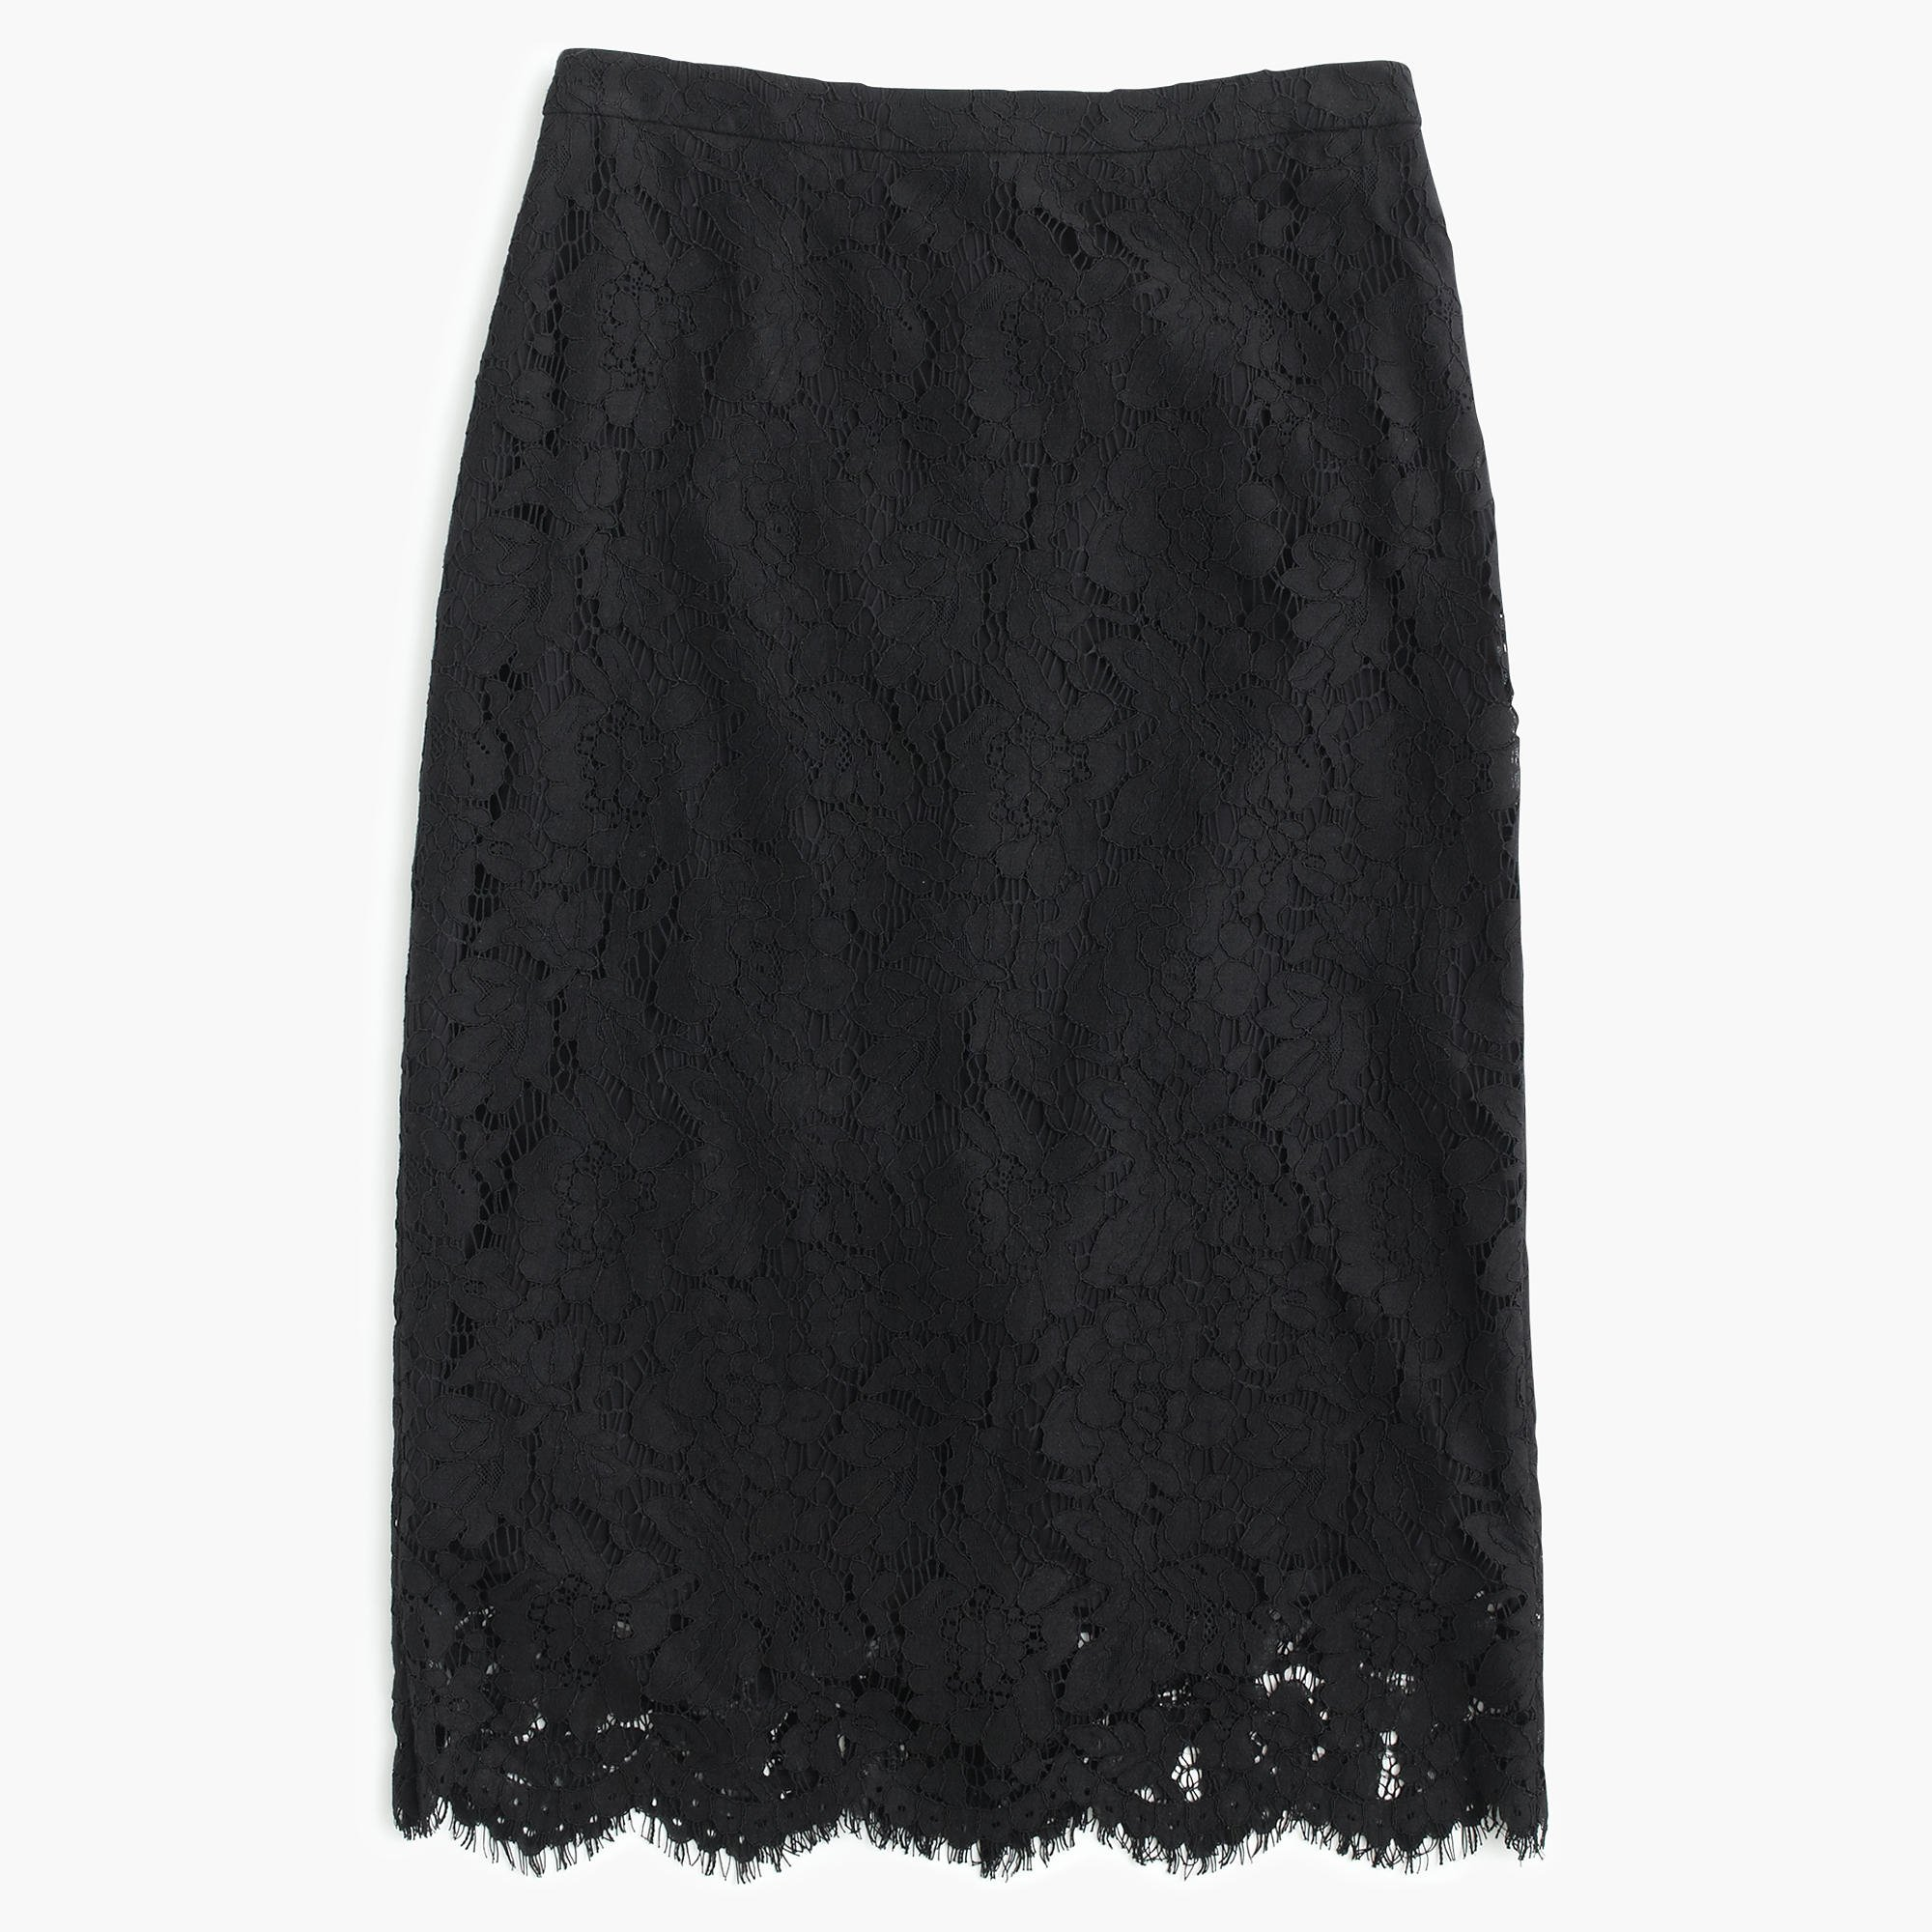 j crew collection lace pencil skirt in black lyst